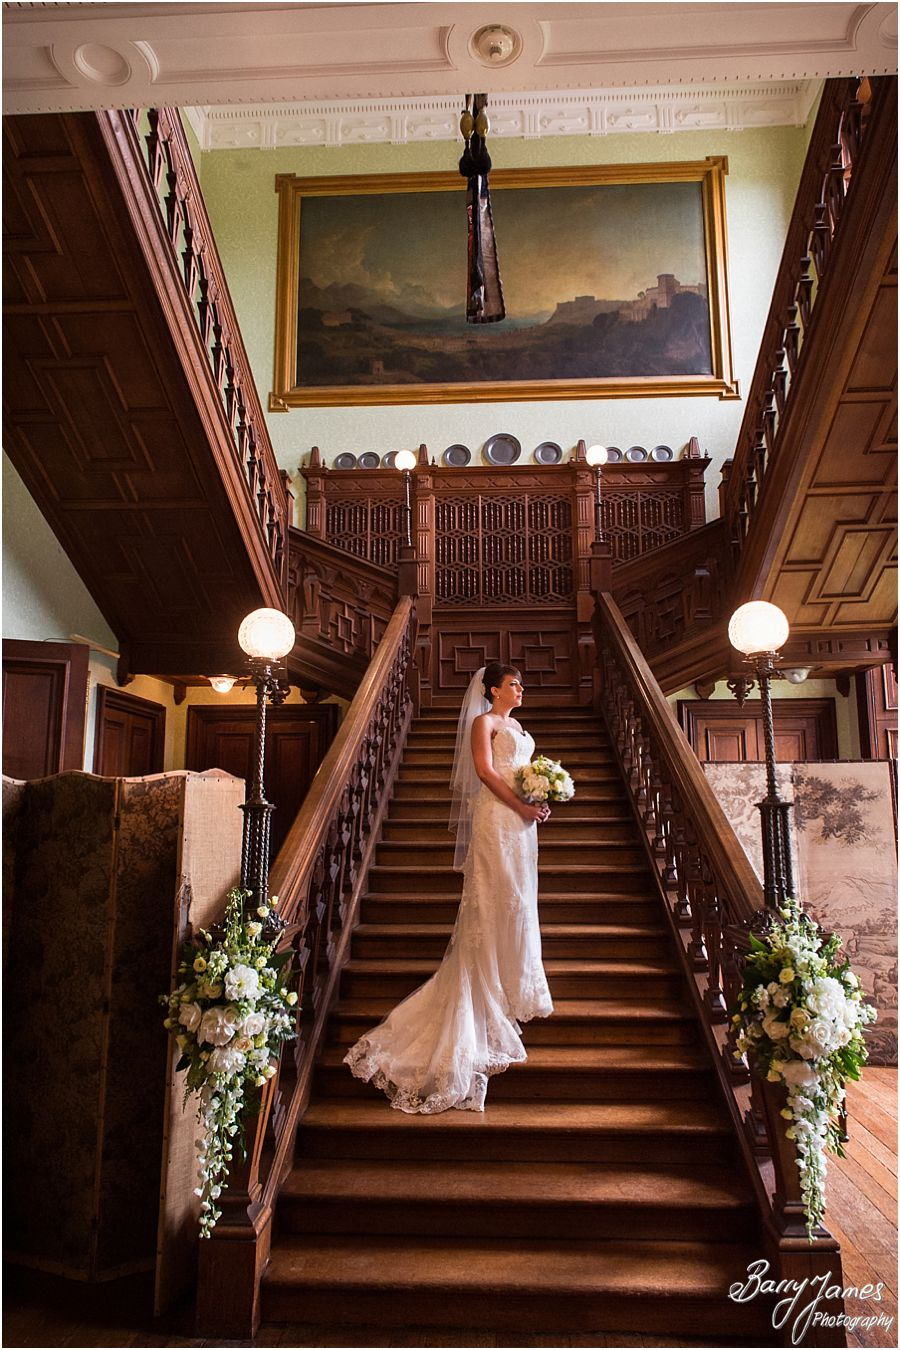 Timeless portraits on the staircase at Sandon Hall in Staffordshire by Recommended Wedding Photographer Barry James